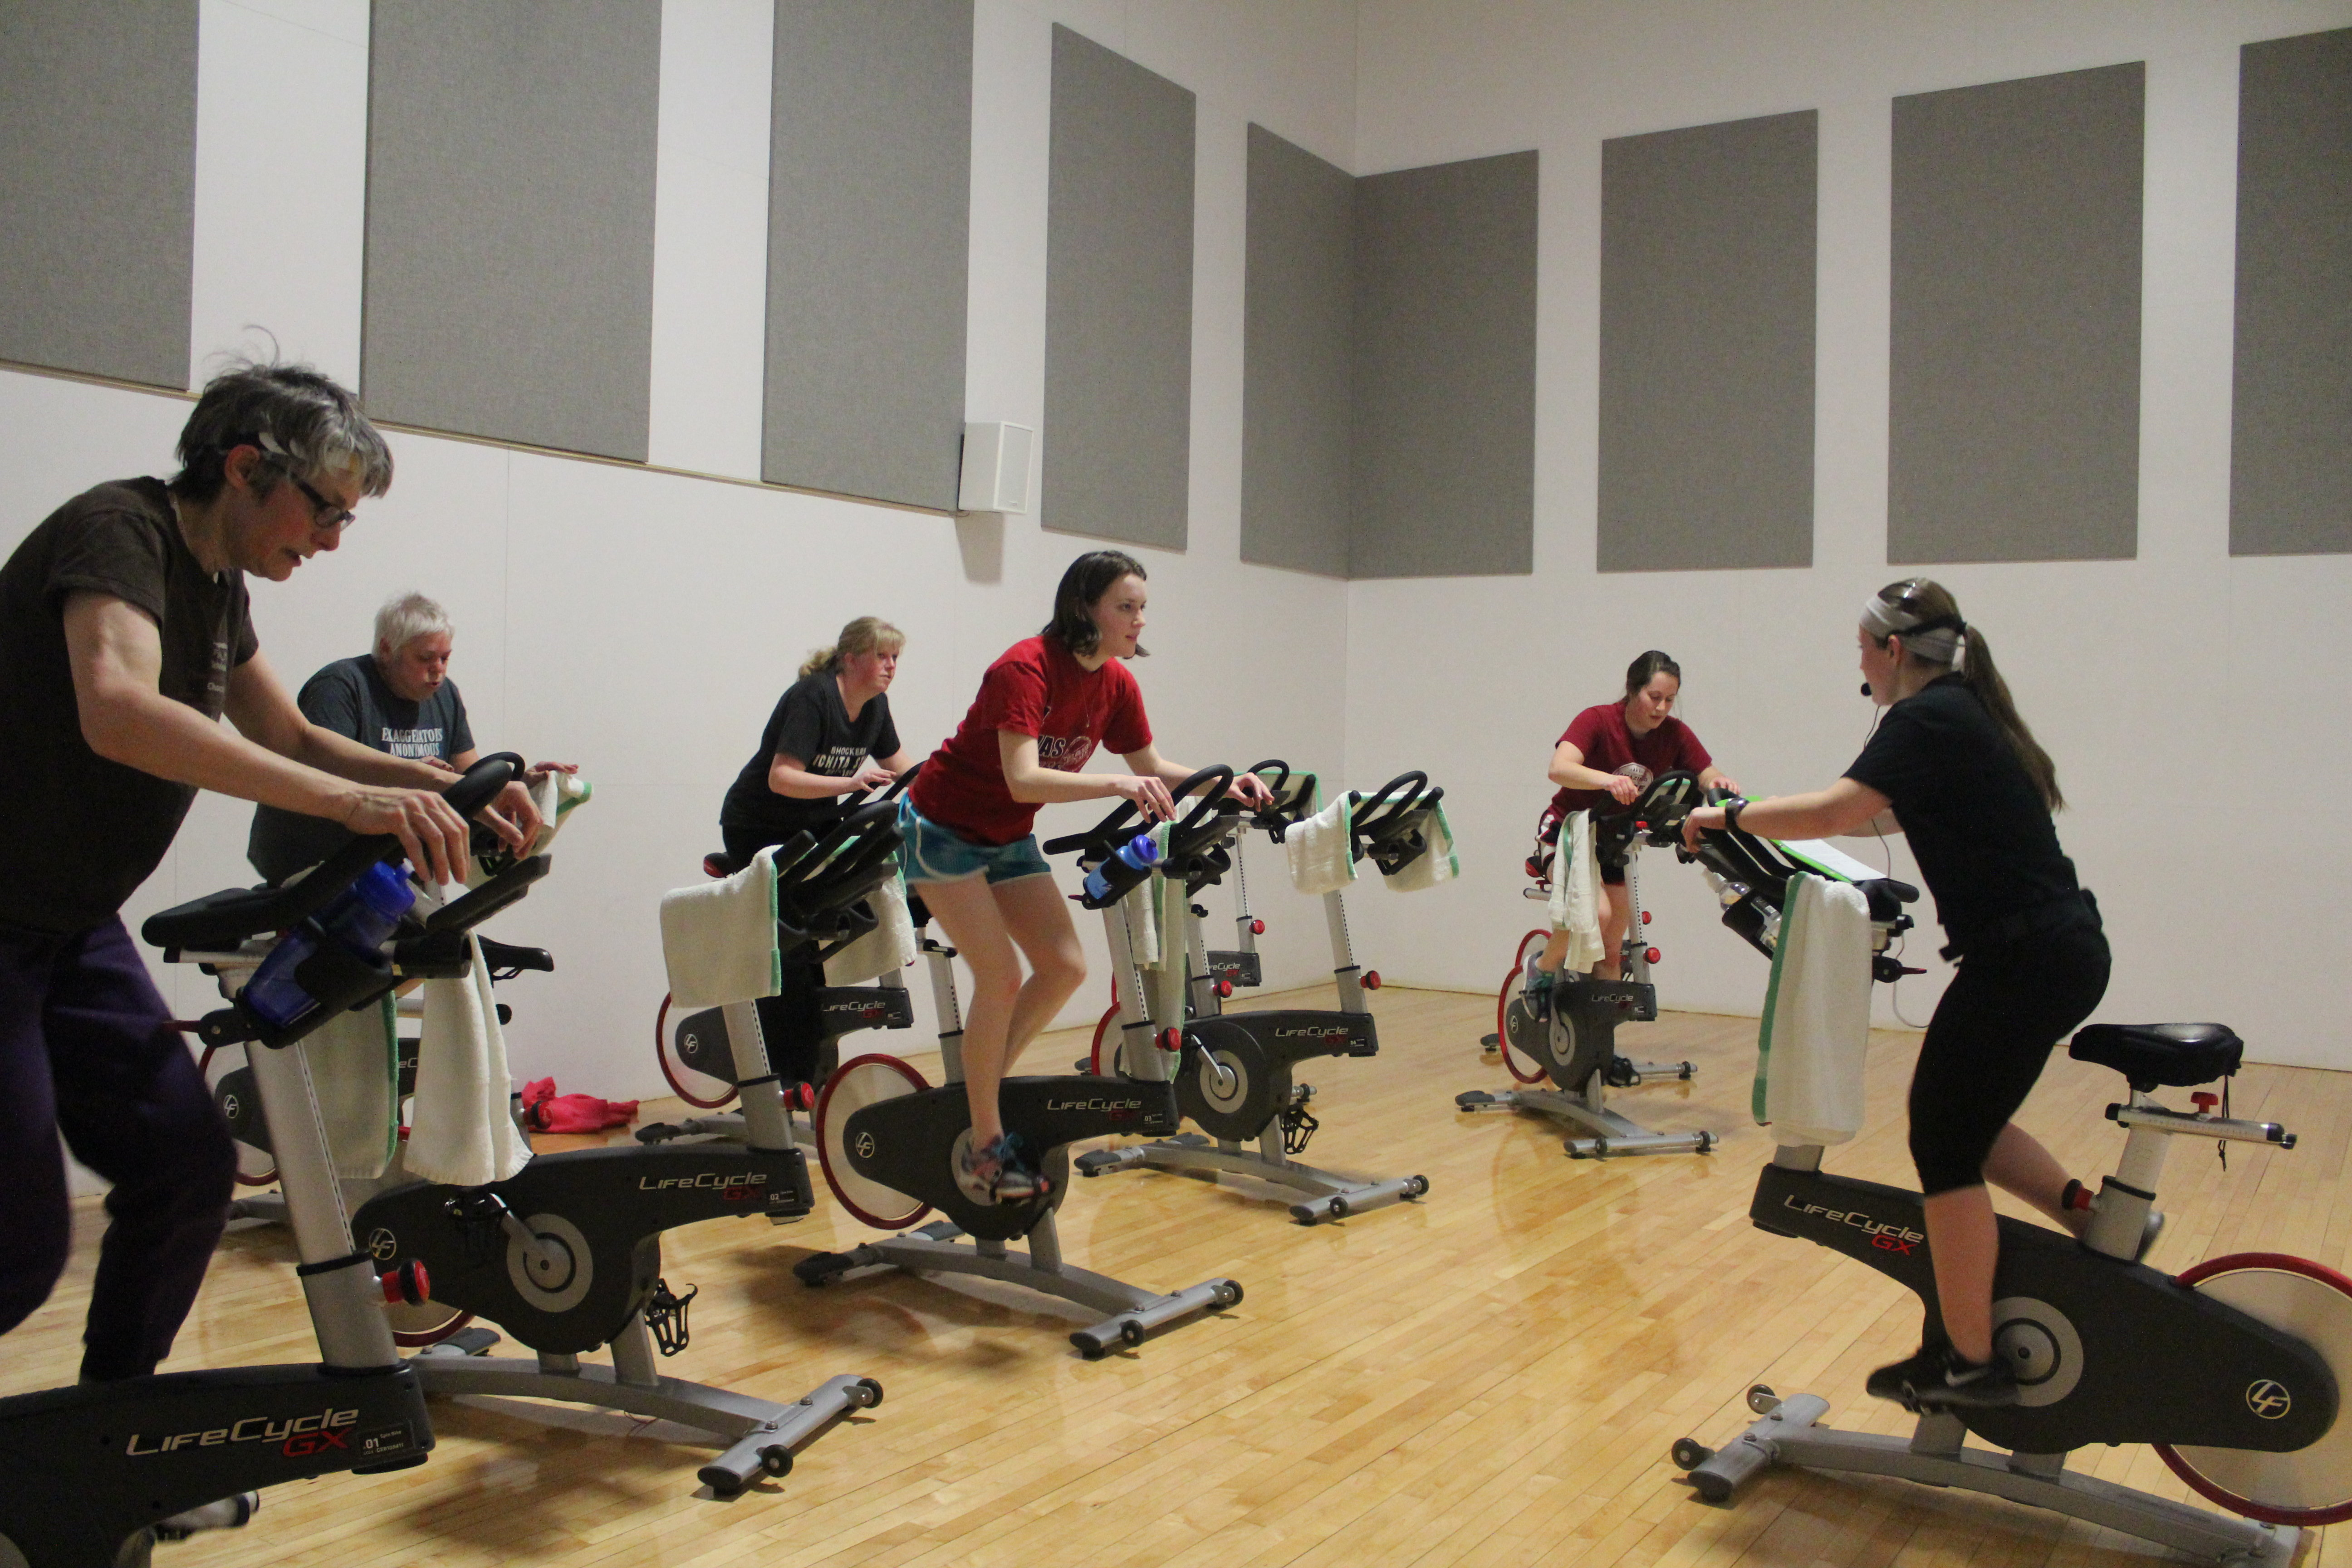 a class of cyclefit. five people on stationary bikes are arranged around an instructor with a headset on.